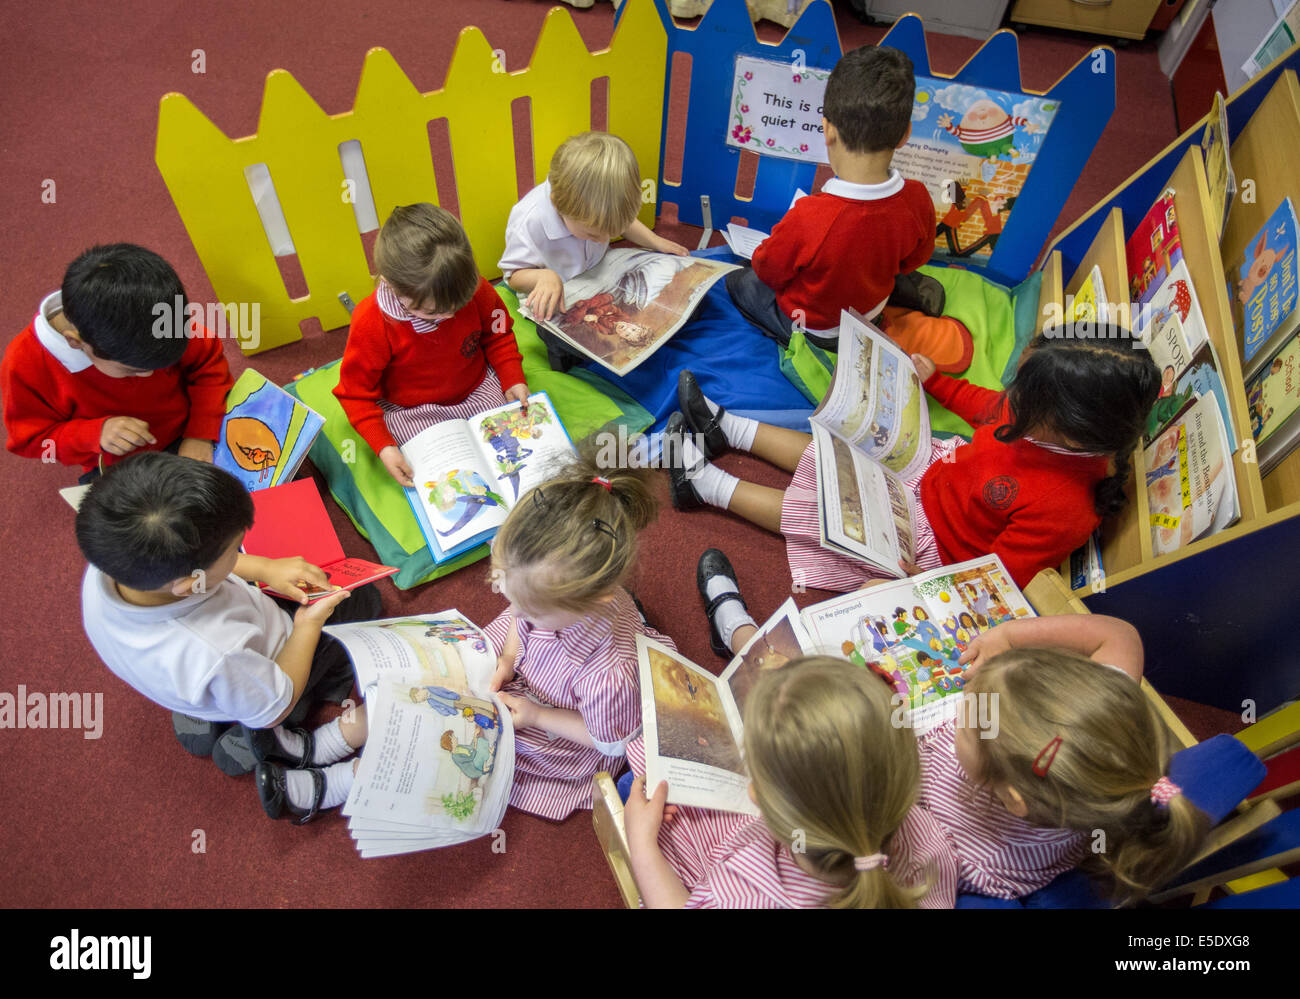 Primary school children reading in a classroom in the UK. - Stock Image